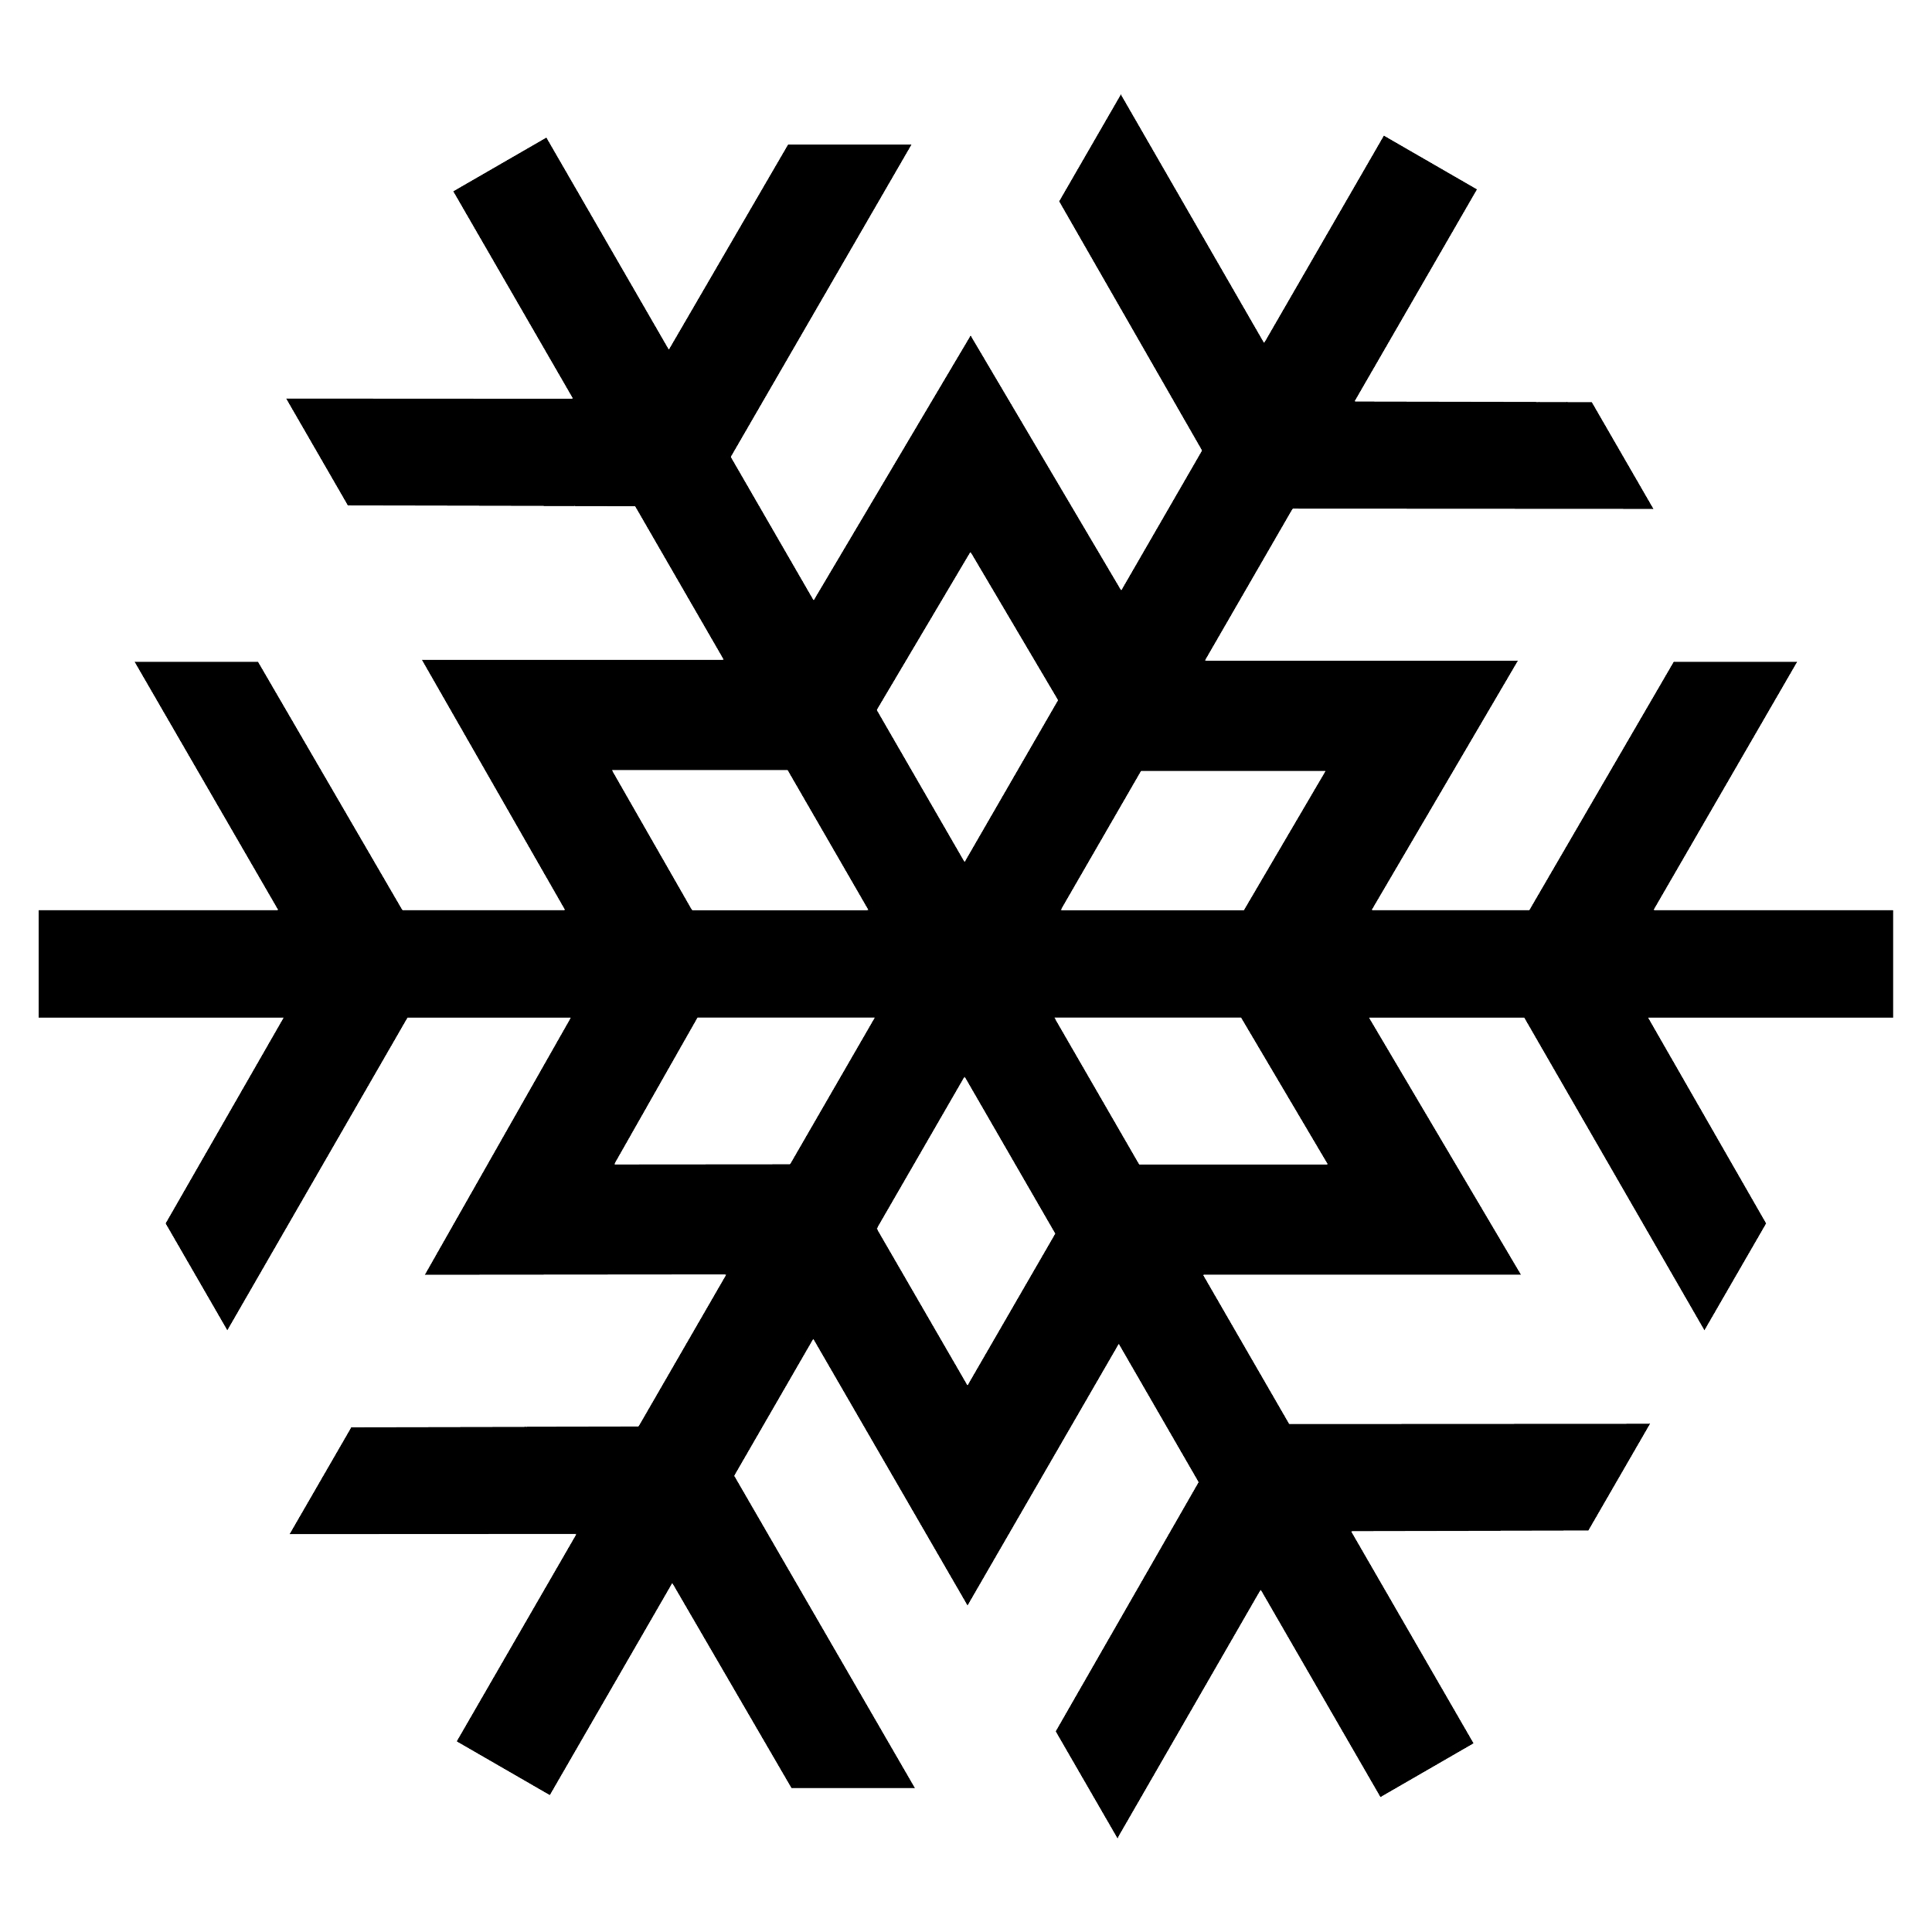 Free white snowflake clipart no background banner black and white 28+ Collection of Chunky Snowflake Clipart | High quality, free ... banner black and white